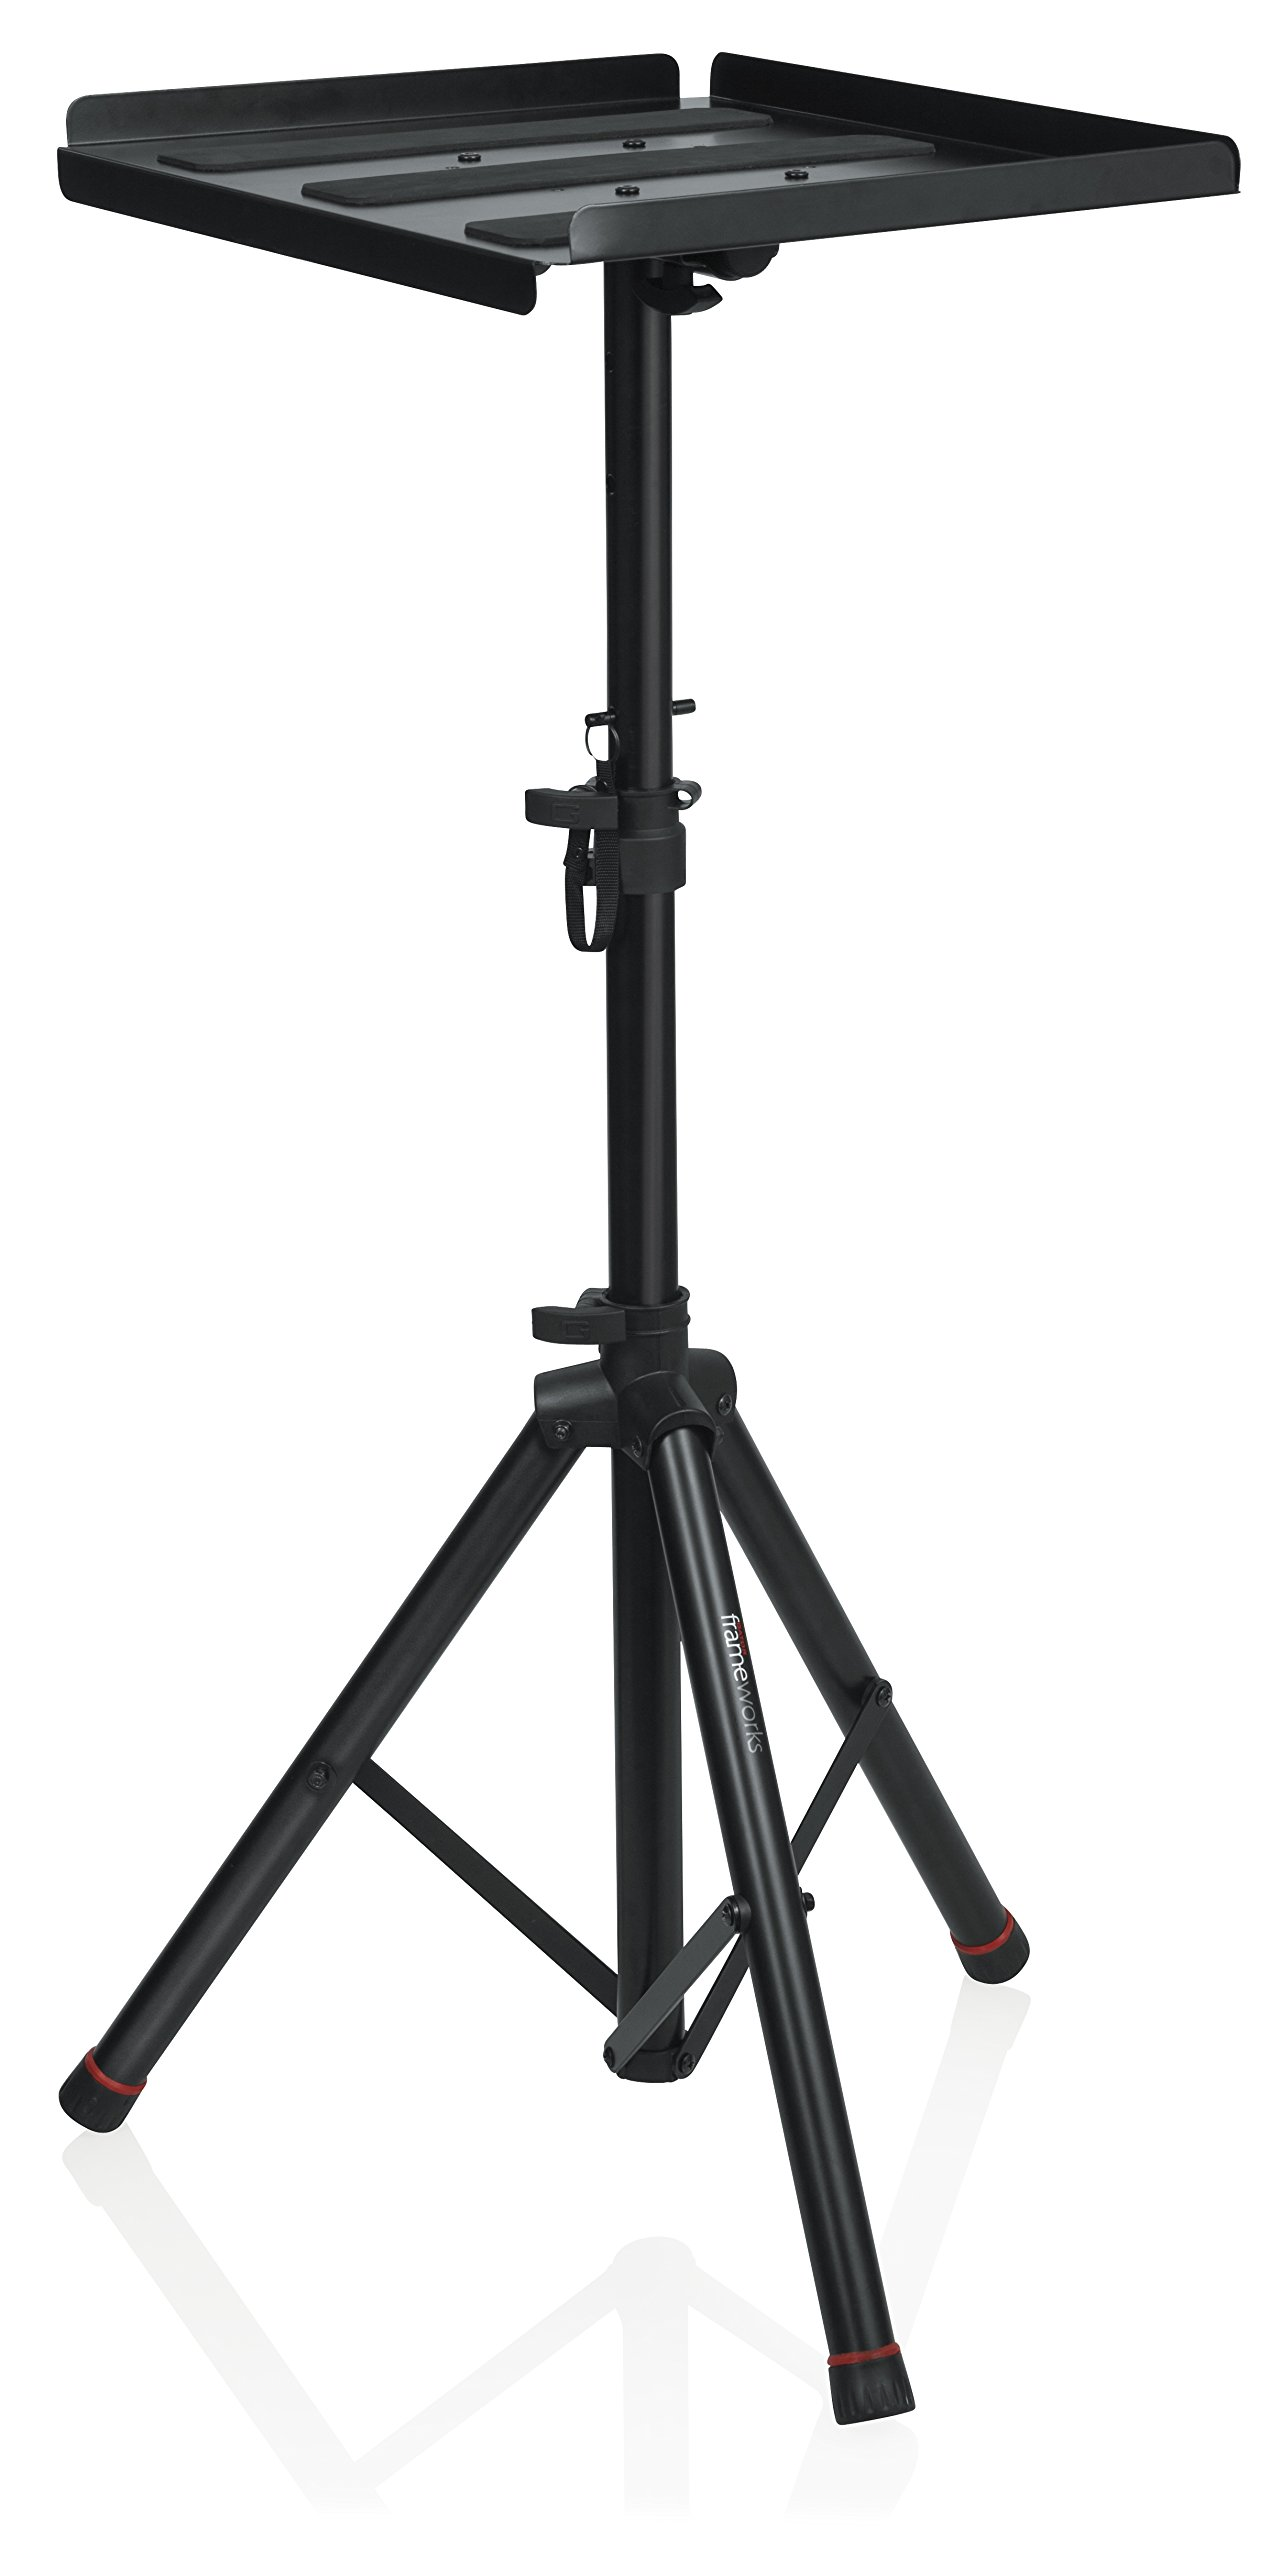 Gator Frameworks Heavy Duty Deluxe Adjustable Multi-Media Gear Stand Featuring 100x100 Vesa Mounting Brackets | Ideal for Laptops and more; Min/Max Height - 36''/48'' (GFW-UTL-MEDIATRAY2)